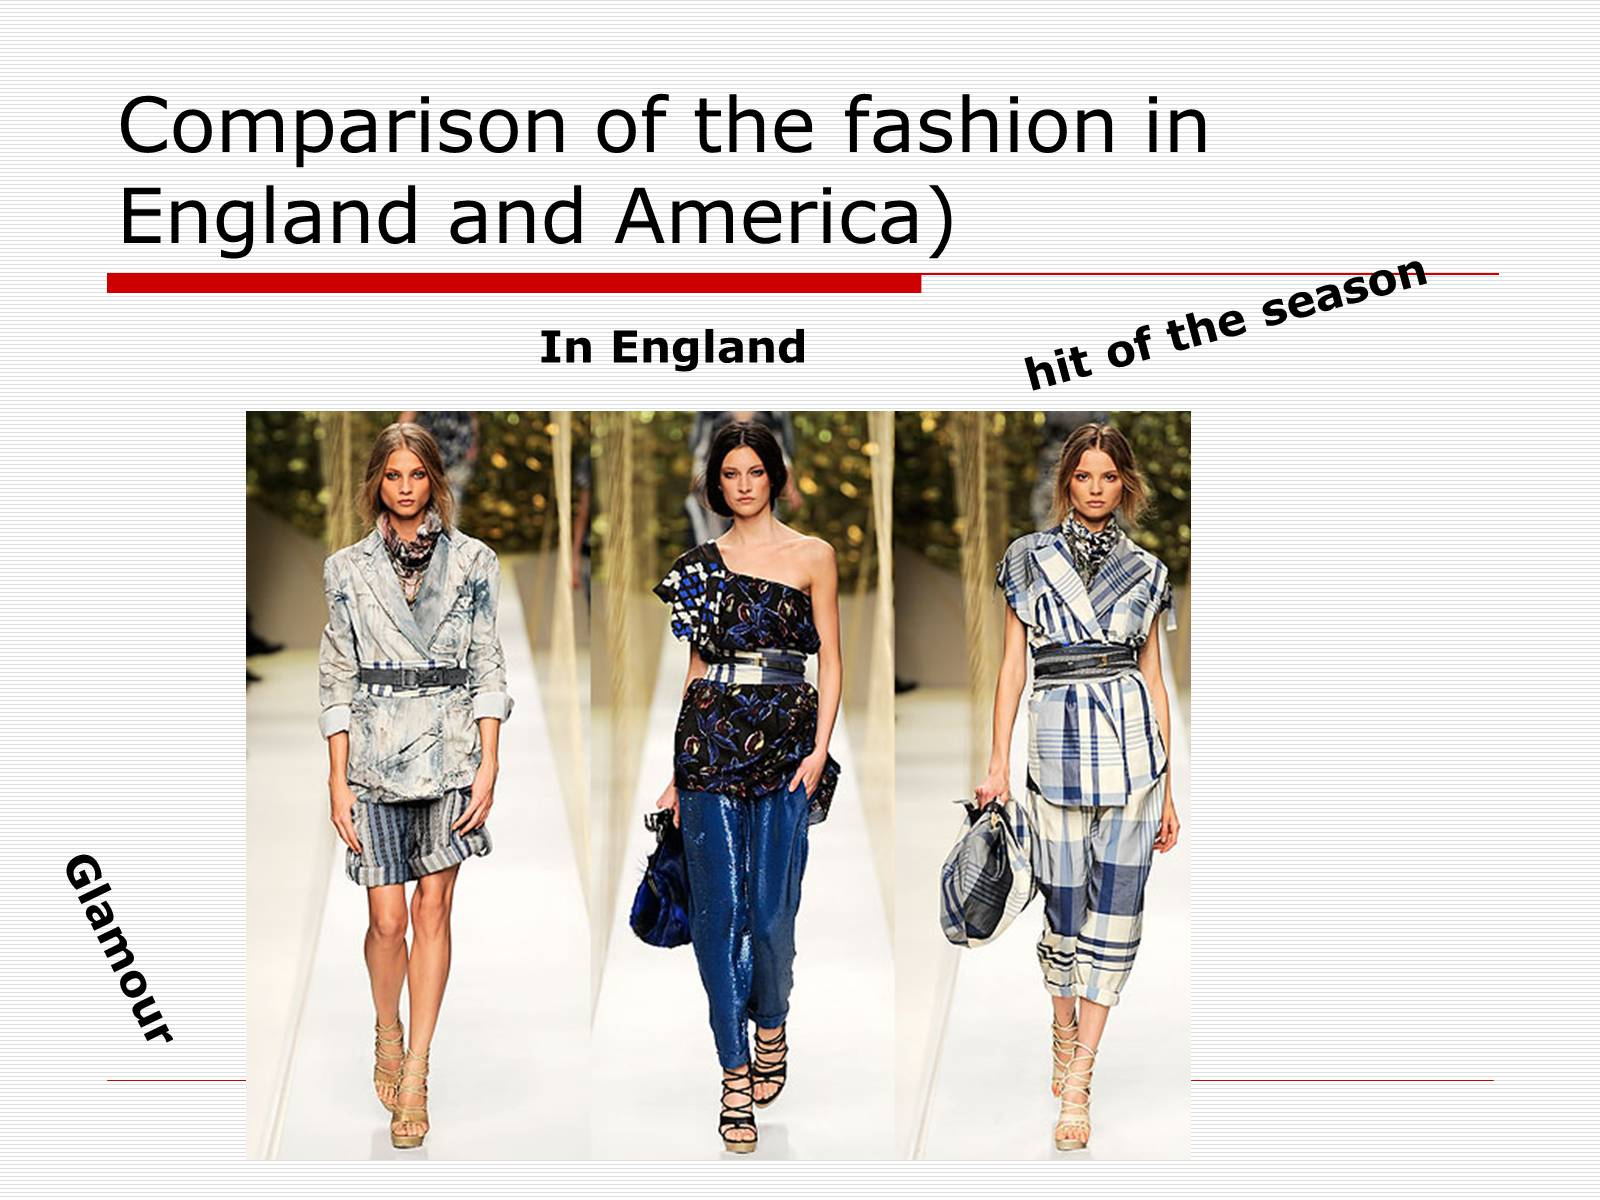 Презентація на тему «Comparison of the fashion in England and America» - Слайд #47